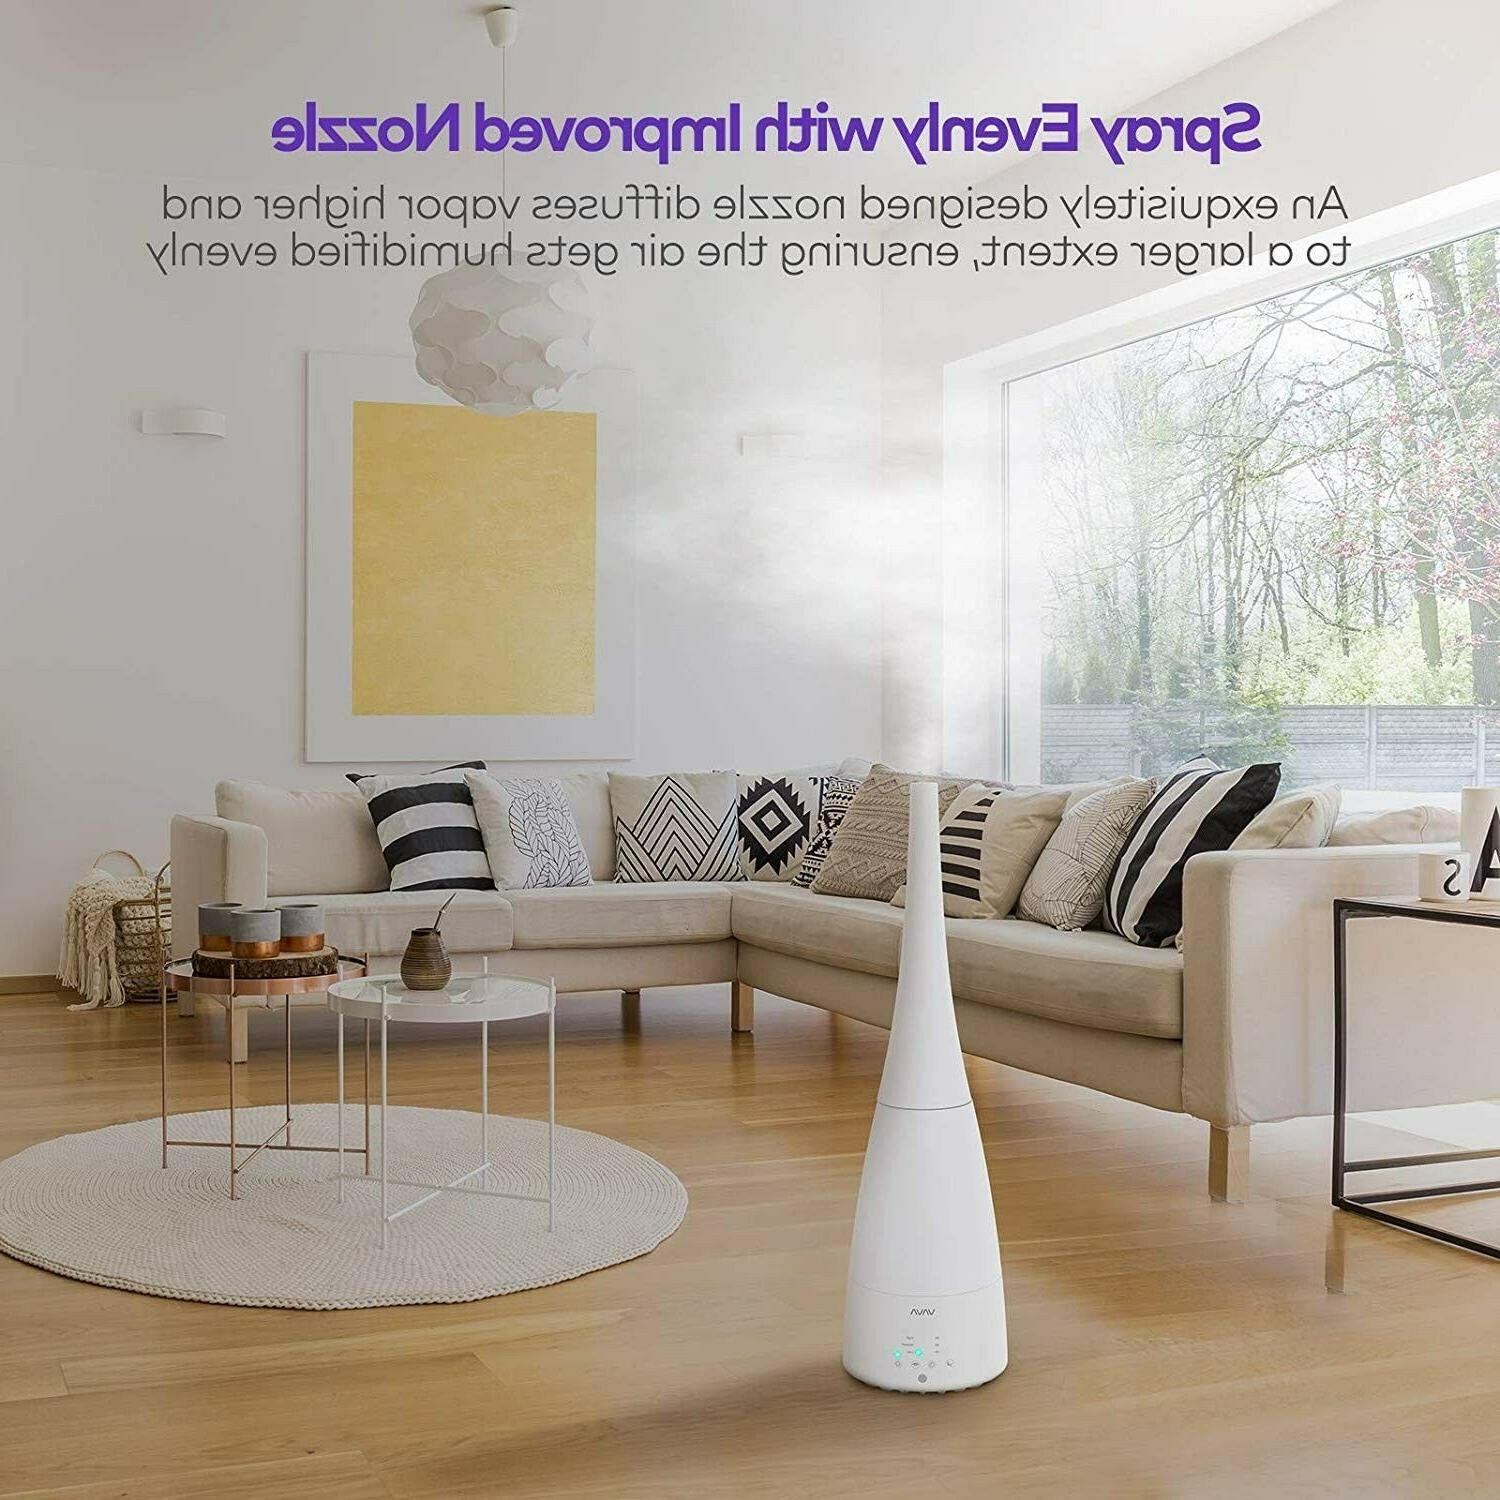 VAVA Cool Large Room, 3L Humidifiers for Home